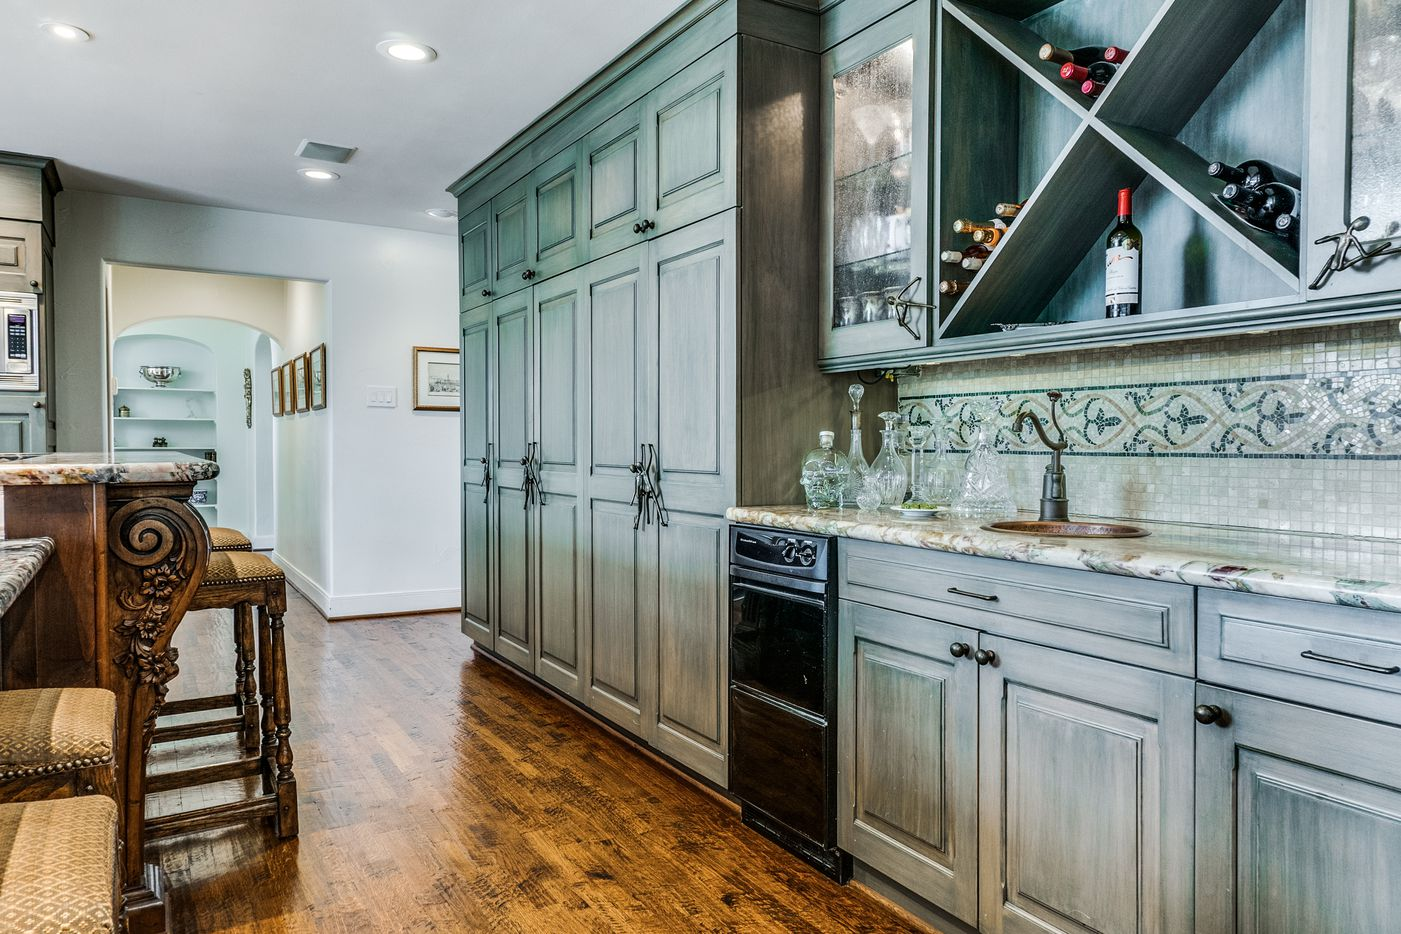 Take a look at the home at 4517 Lorraine Ave. in Highland Park.